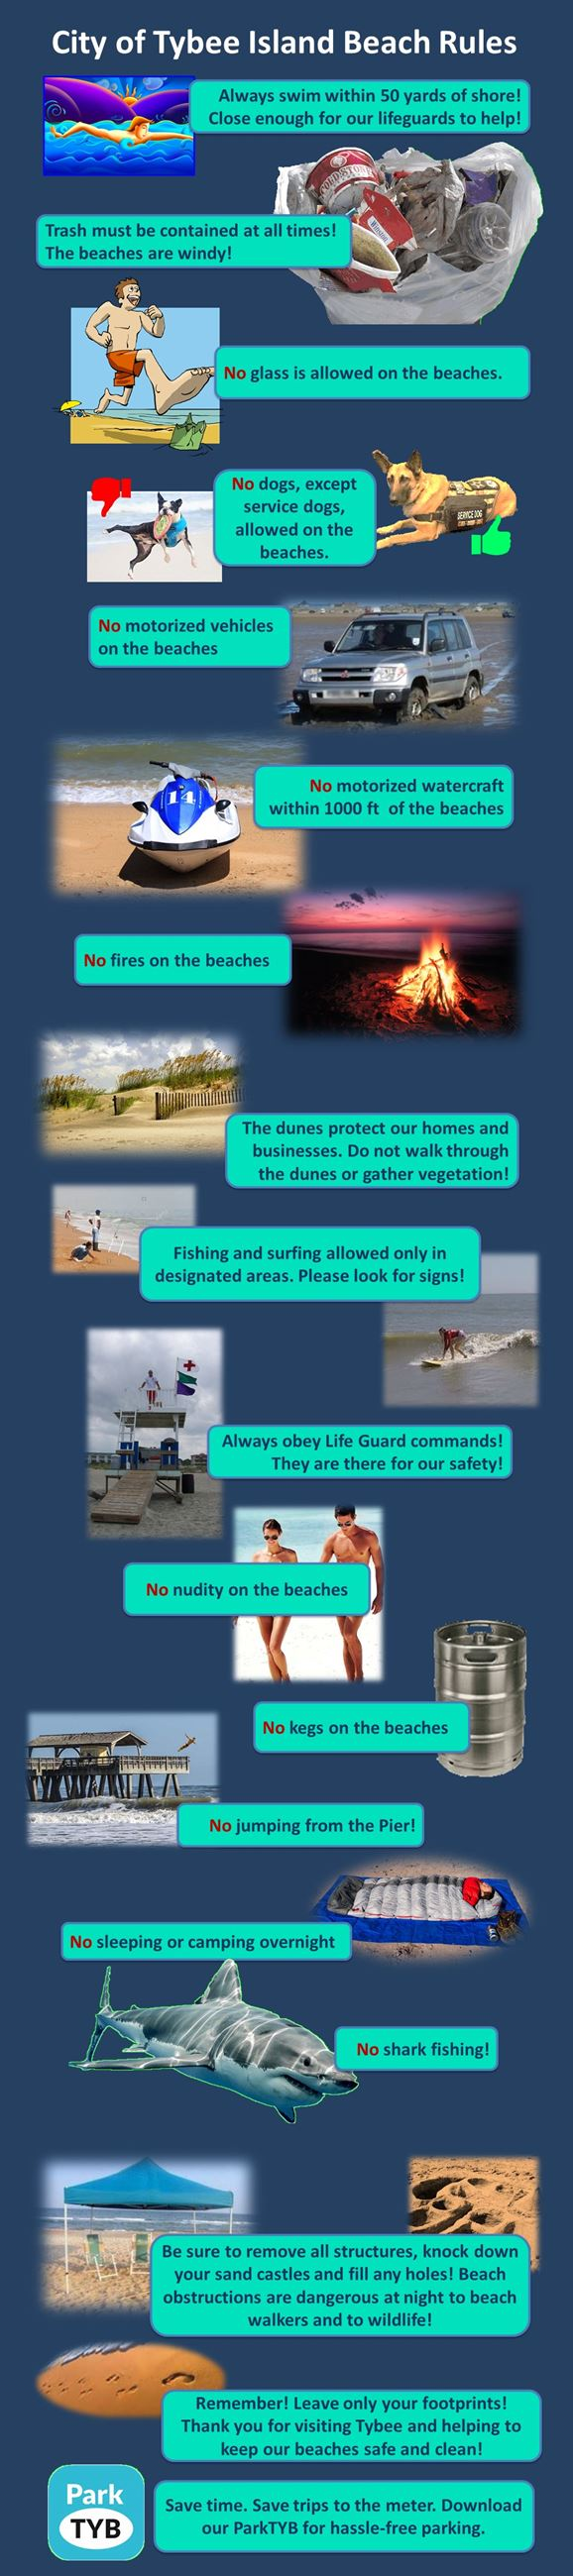 BeachRuleInfoGraphic